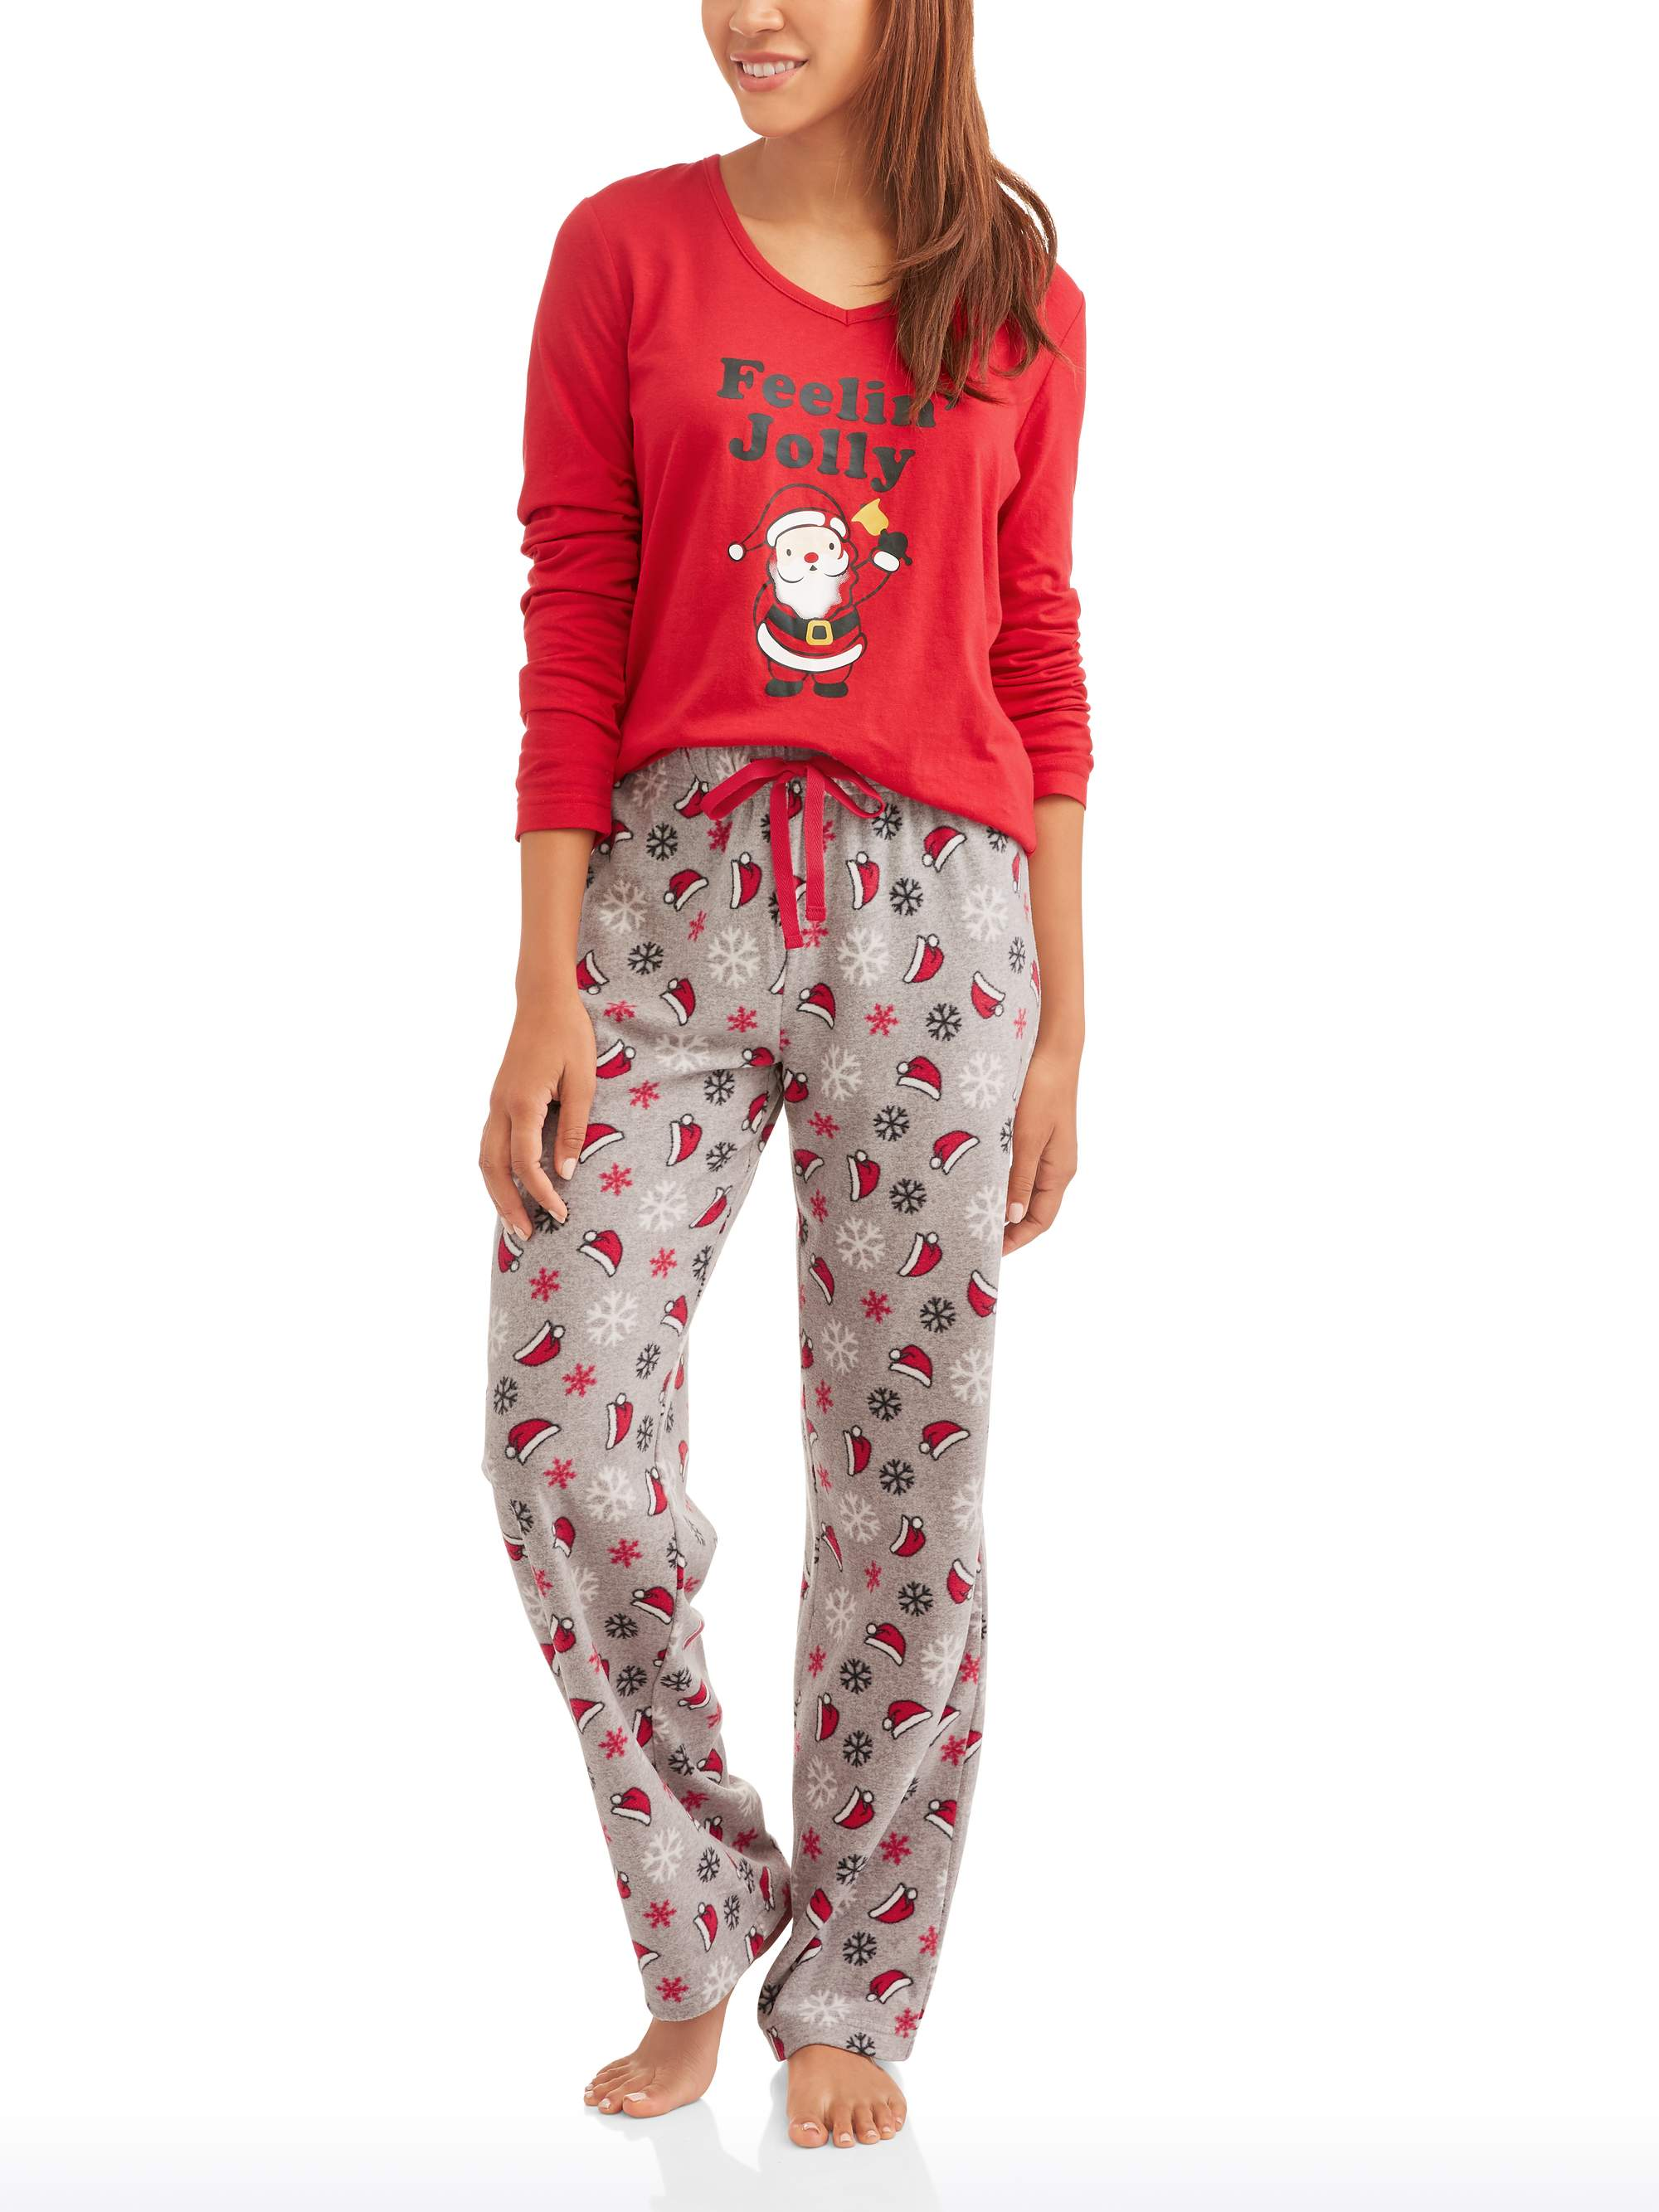 Jv Apparel - Women's Holiday Family Pajamas Santa 2 P ...